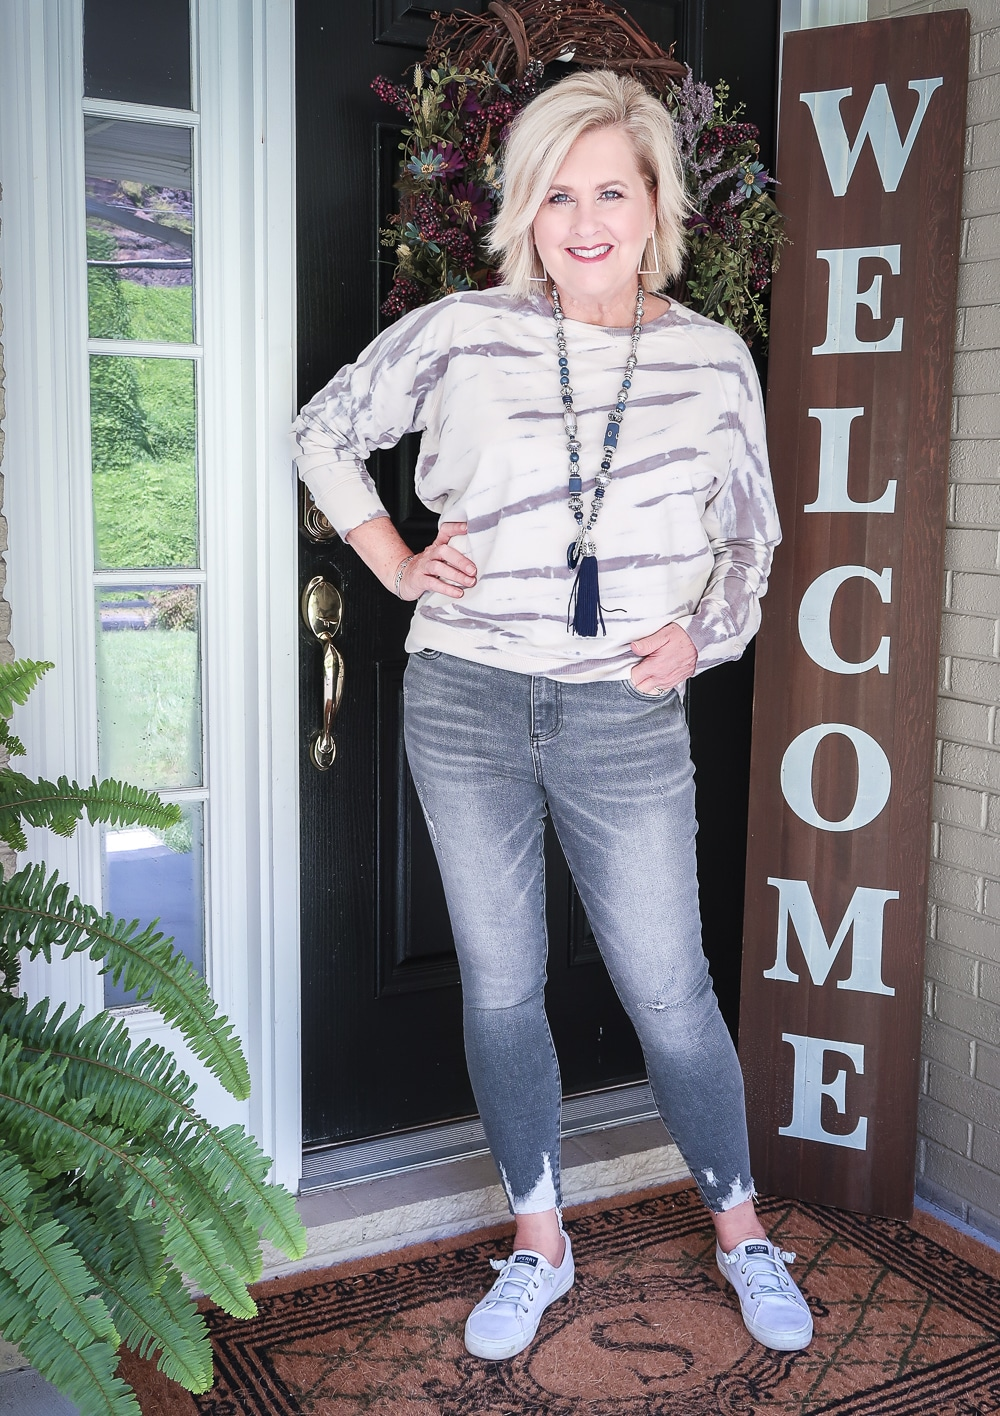 Fashion Blogger 50 Is Not Old is wearing a tie-dye sweatshirt with a pair of washed gray jeans from Kut From The Kloth with Sperry sneakers